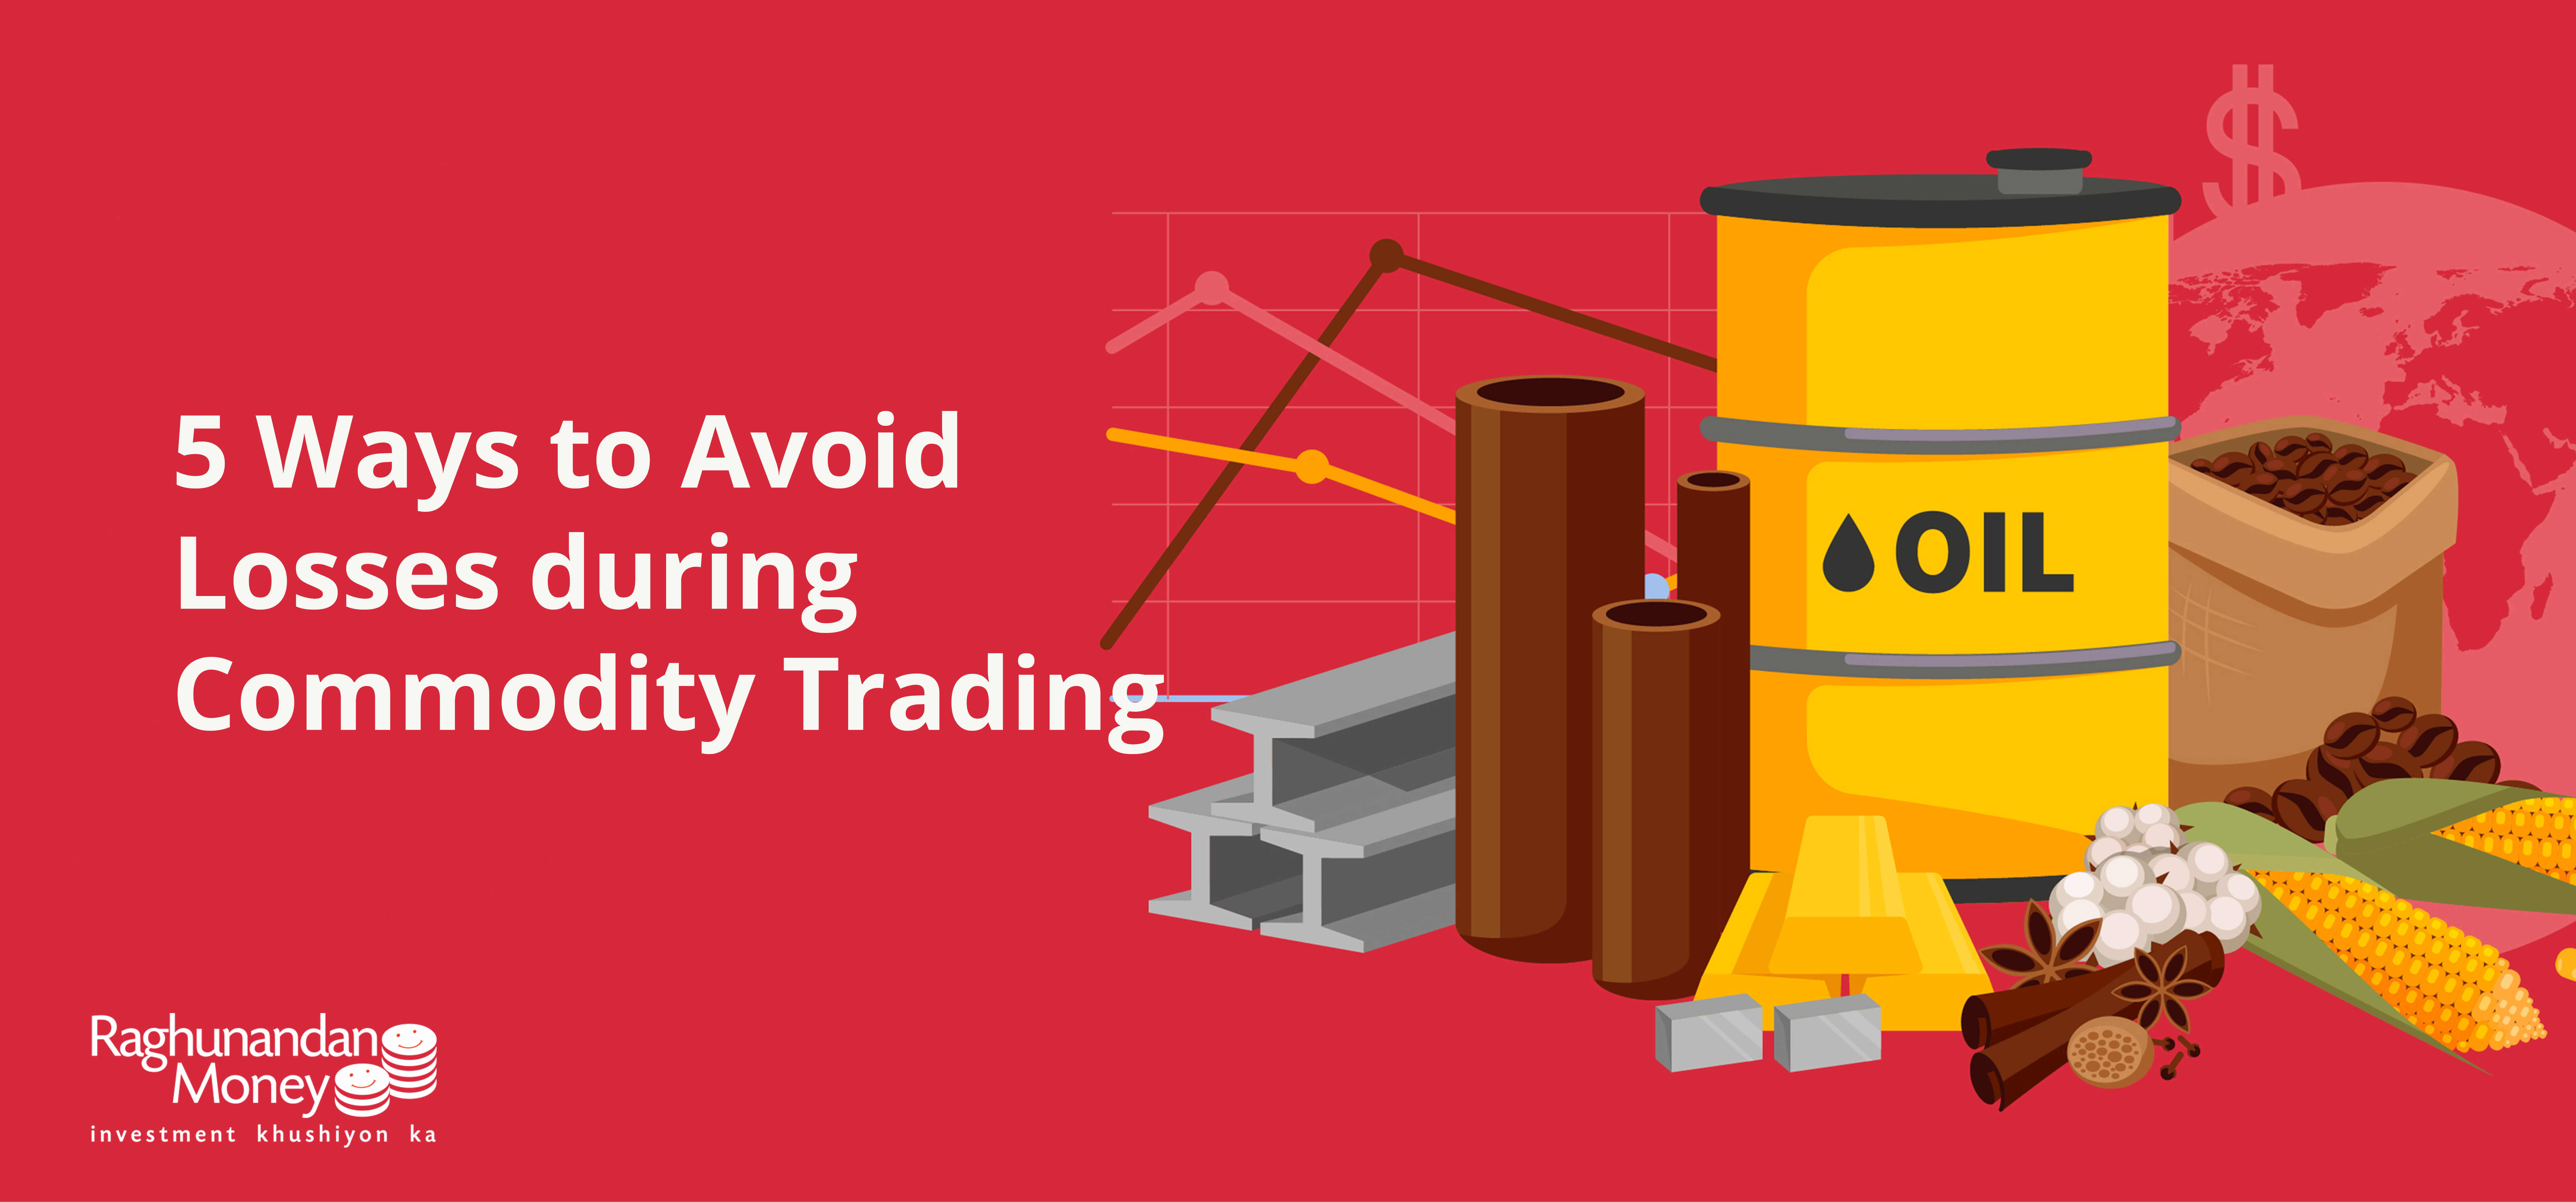 commodity trading losses